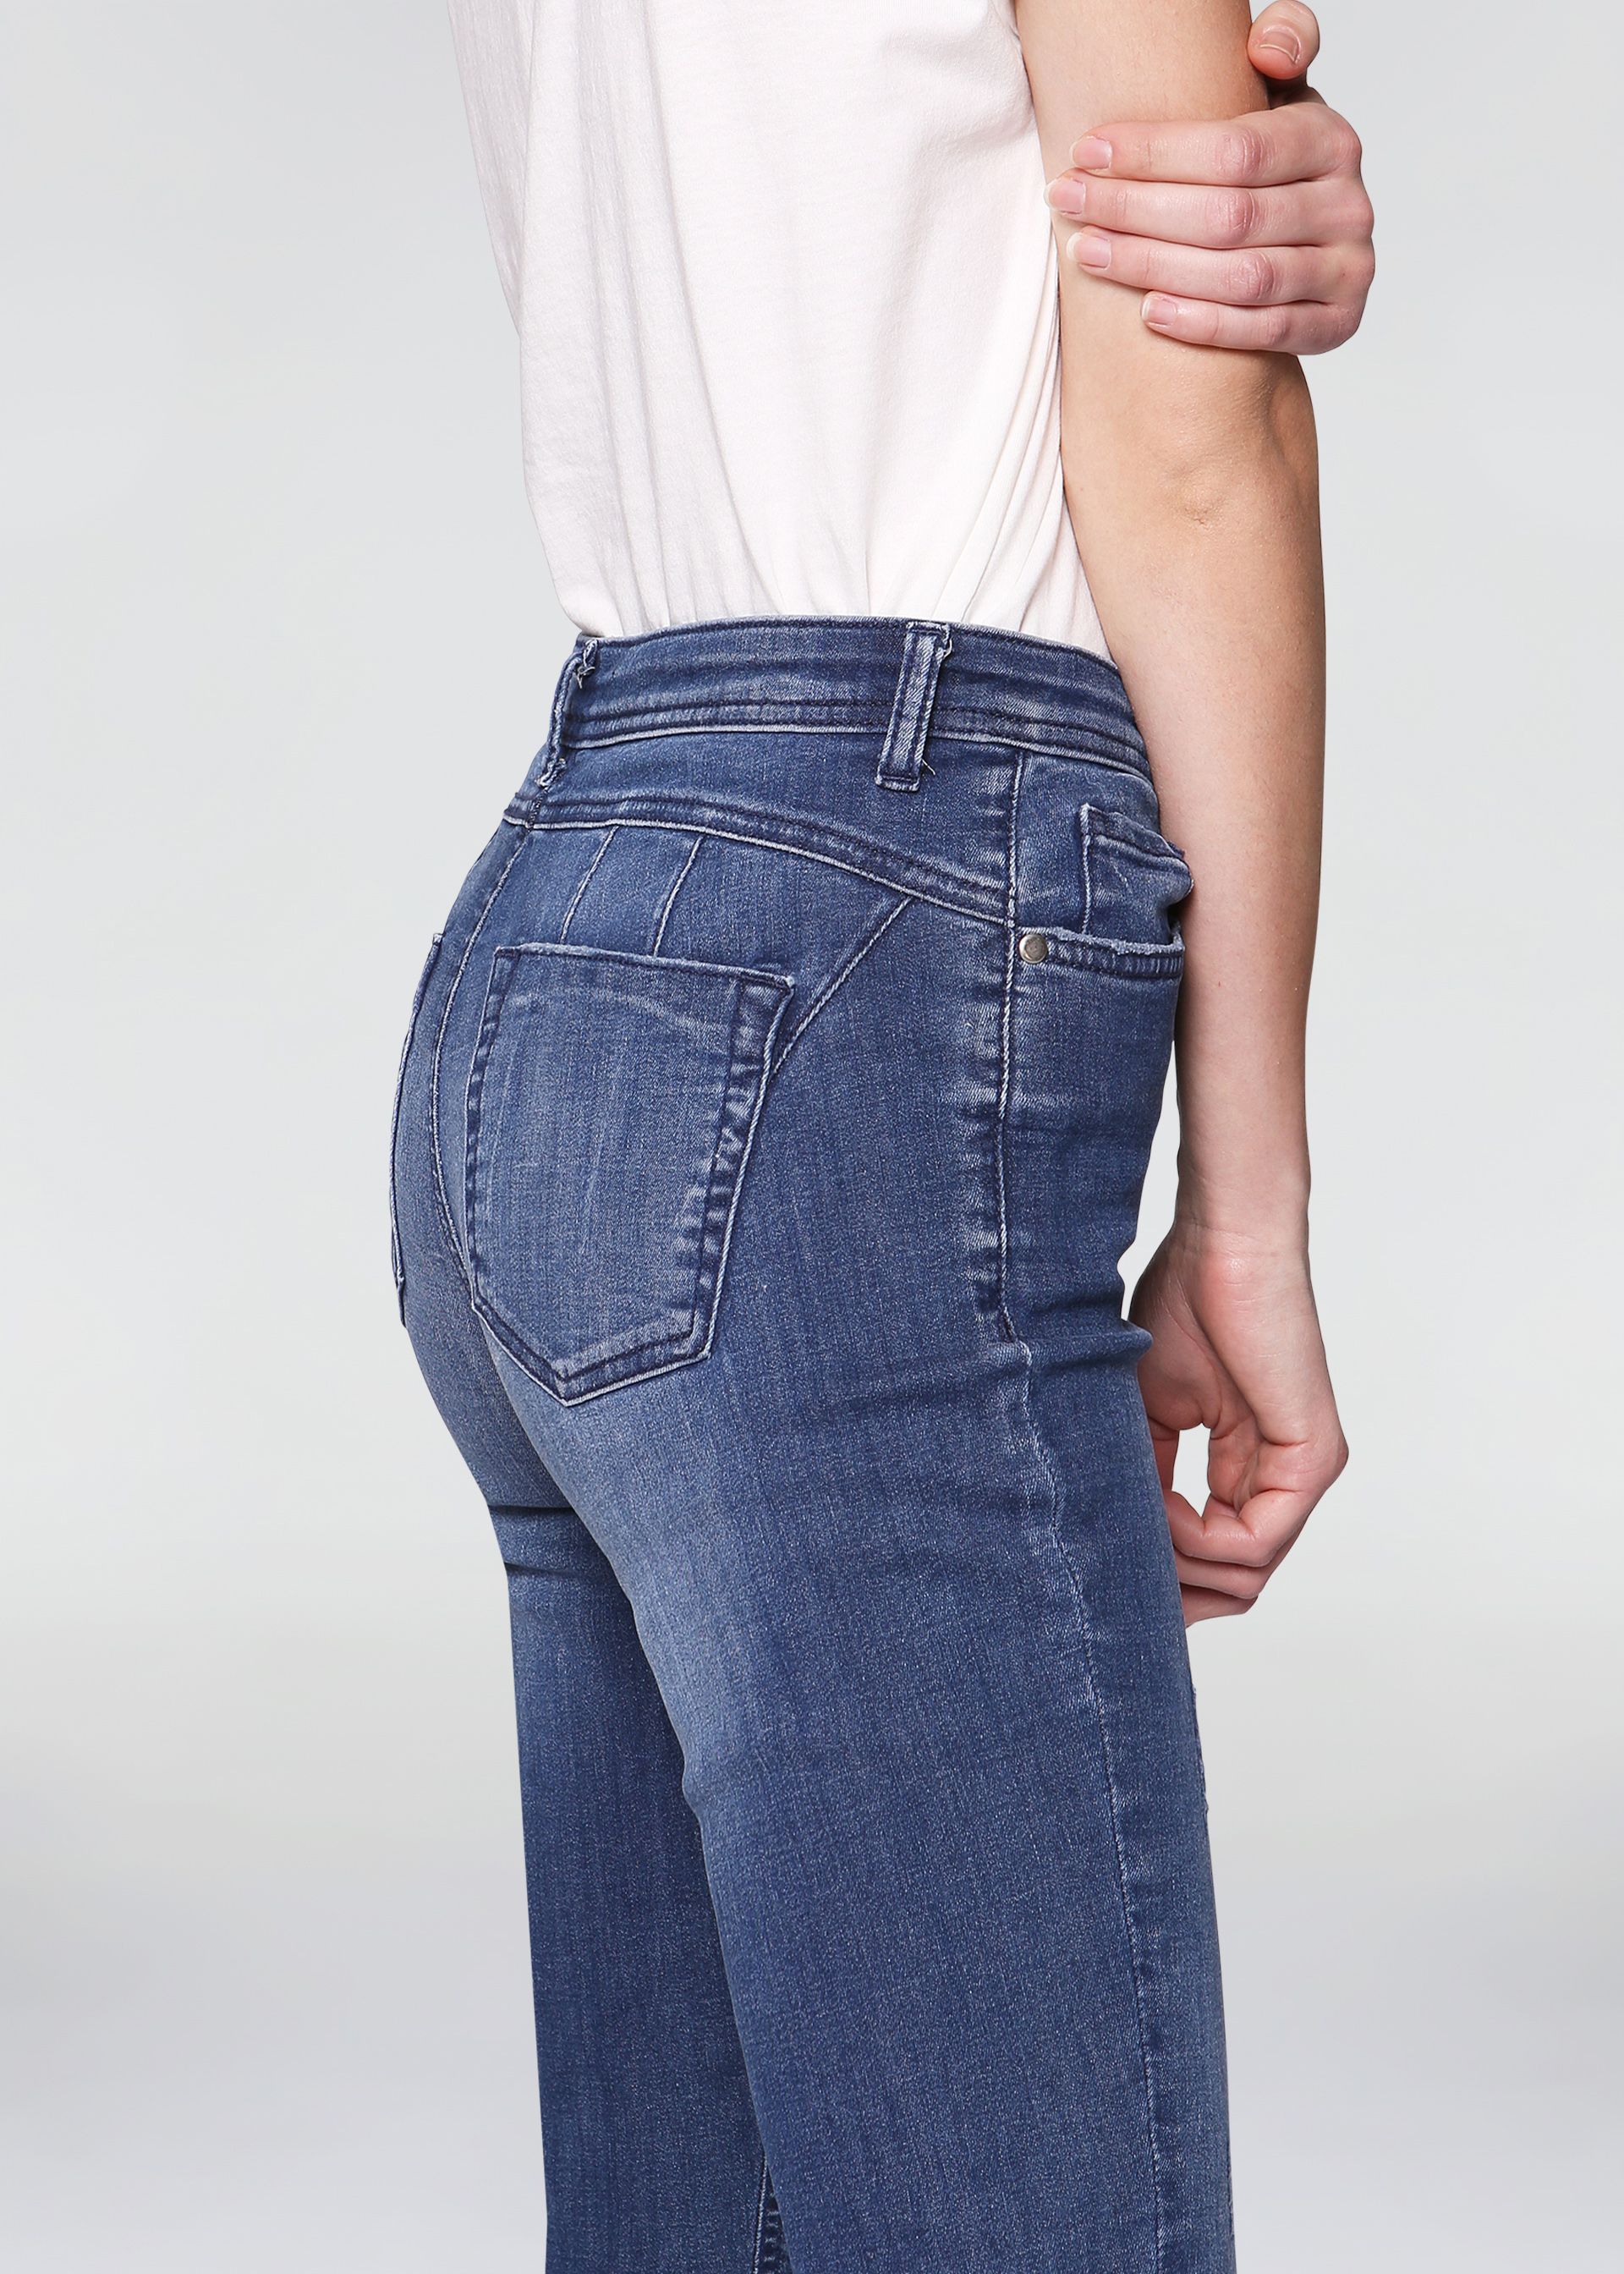 Jeans skinny bottom up